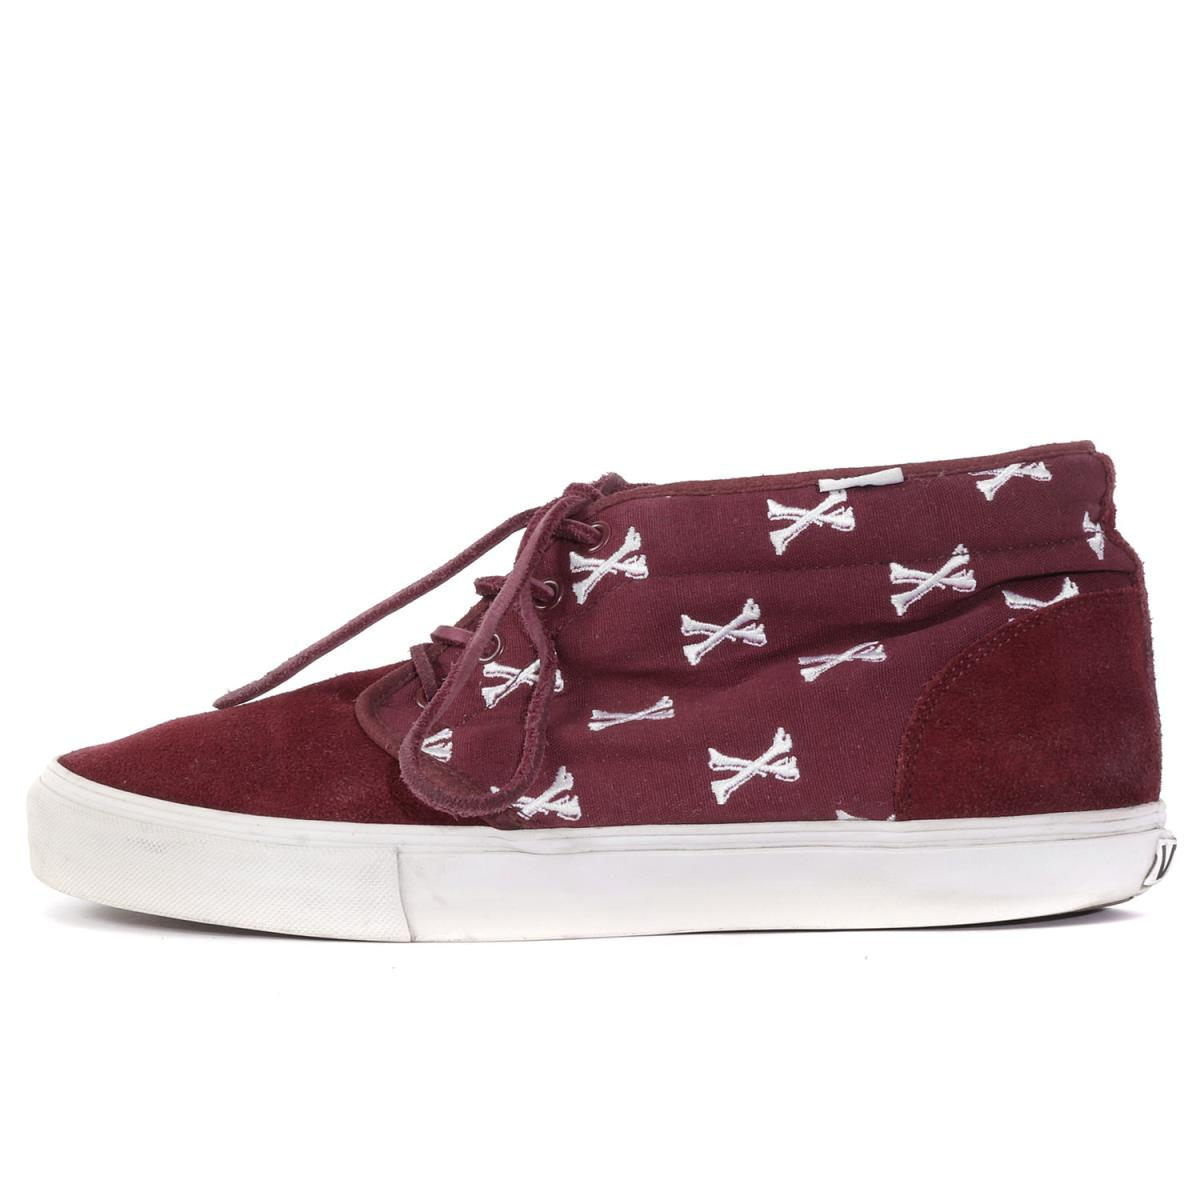 531c070bddc77a BEEGLE by Boo-Bee  WTAPS (double taps) X VANS CHUKKA 59 SYNDICATE .